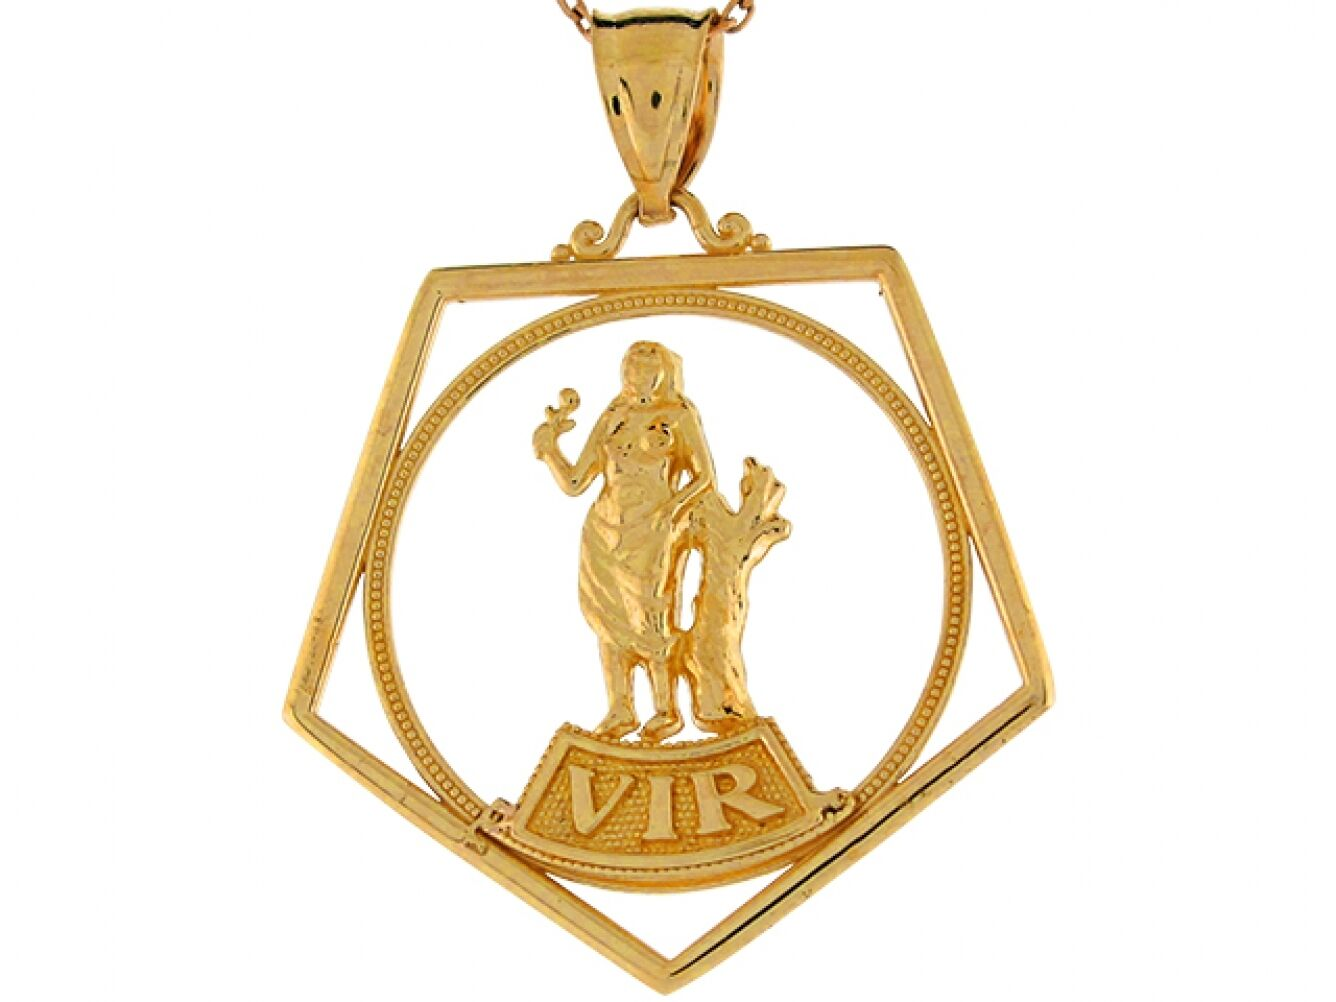 10k or 14k Real Yellow gold Virgo Astrological Zodiac 3.5cm Charm Pendant